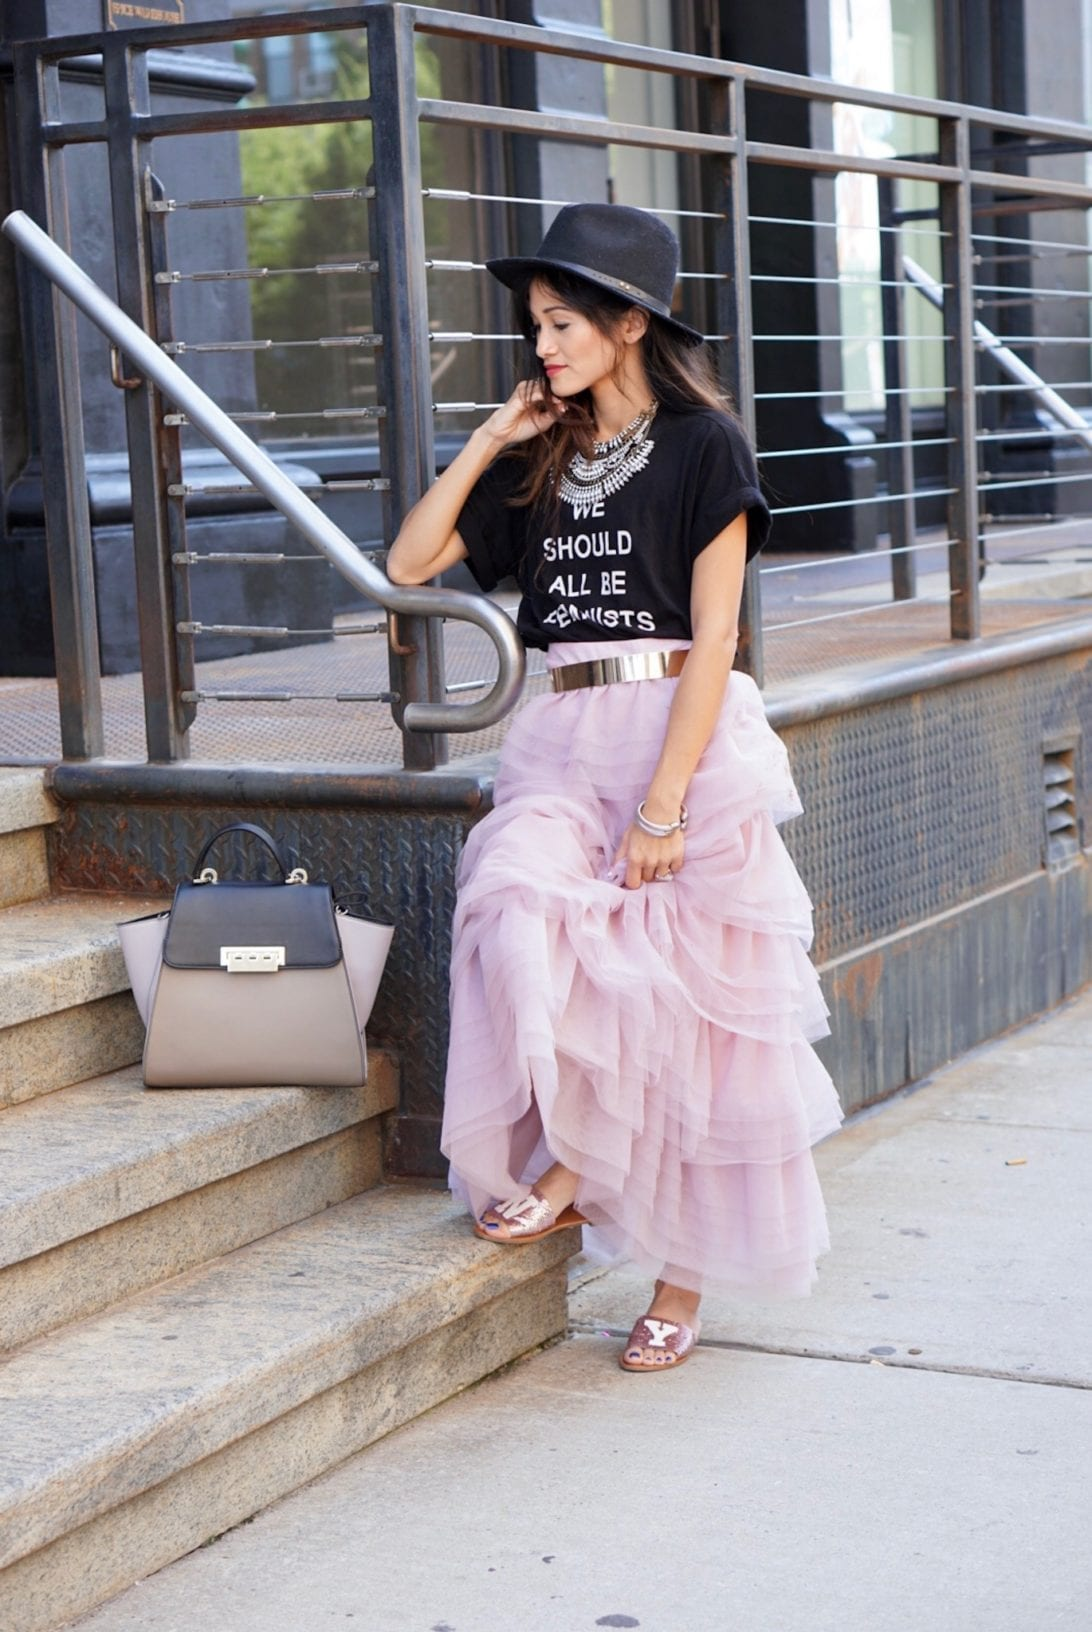 NYC STREET STYLE, New York FASHION WEEK, New York CITY, NYFW 2017, NYFW STREET STYLE, STREET STYLE, FEMINIST, TULLE SKIRT, SEX AND THE CITY OUTFIT, NY GLITTER FLATS, ZAC ZAC POSEN BAG, VOGUE PARTY, VOGUE BRUNCH